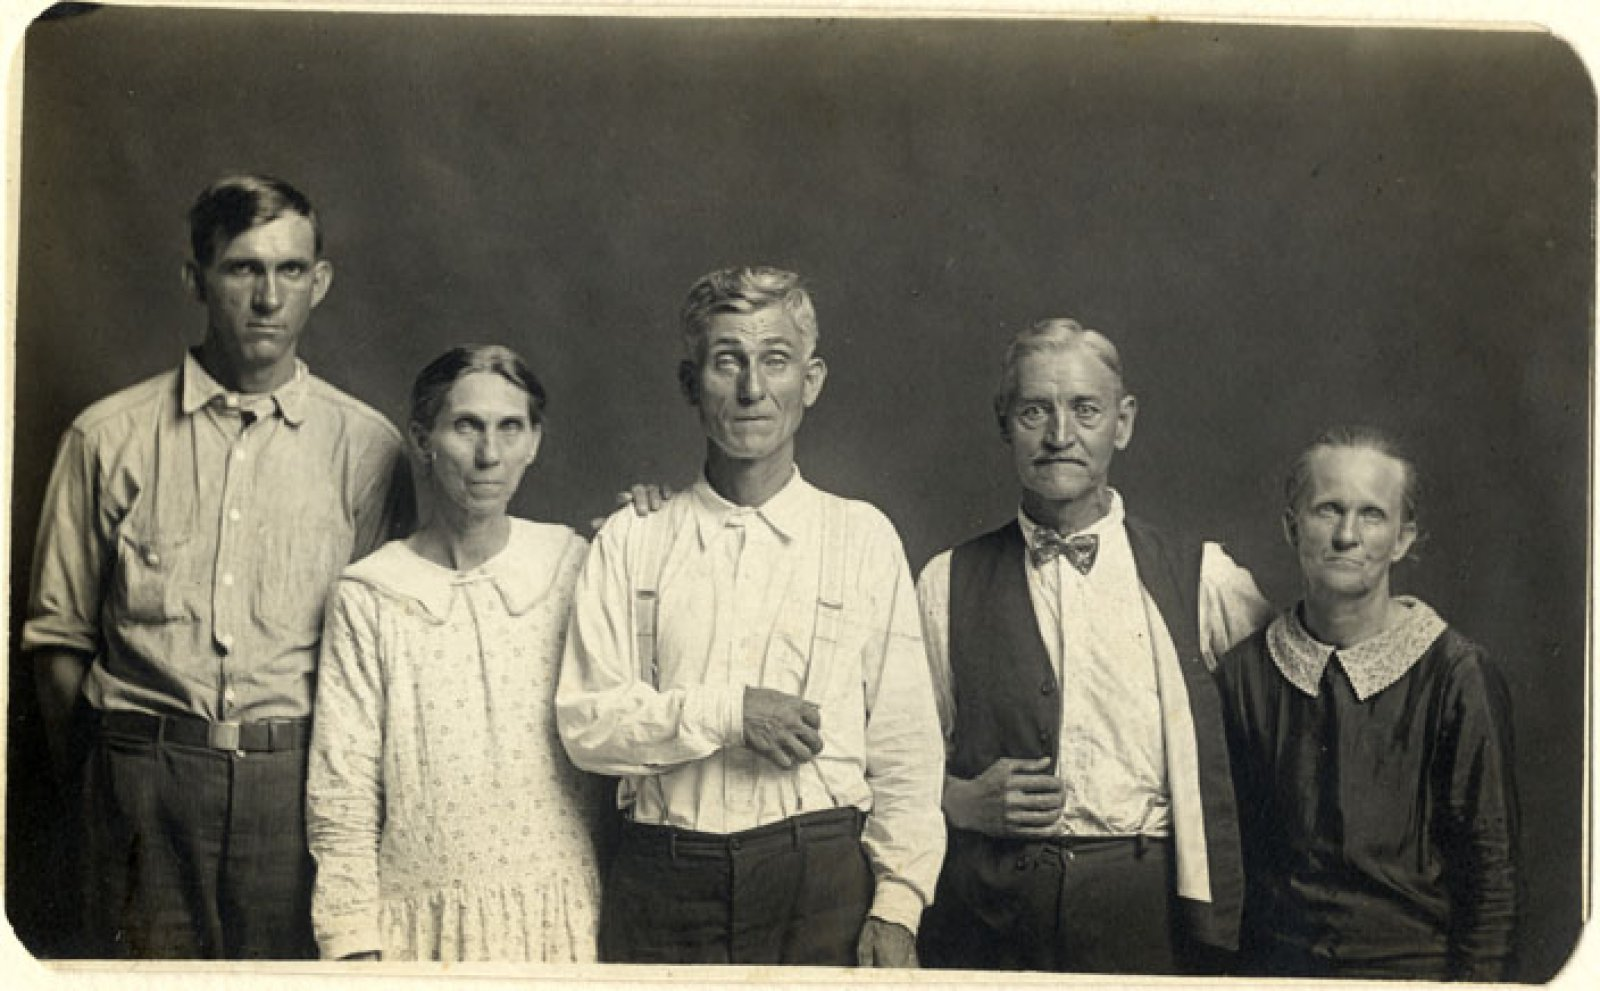 Mike Disfarmer,  Joe and Fanny Carr, Mose Harmon, and Bill and Julia Harlan Vintage gelatin silver print, ca. 1930  All prints courtesy of the Edwynn Houk Gallery or the private collection of Michael Mattis and Judith Hochberg